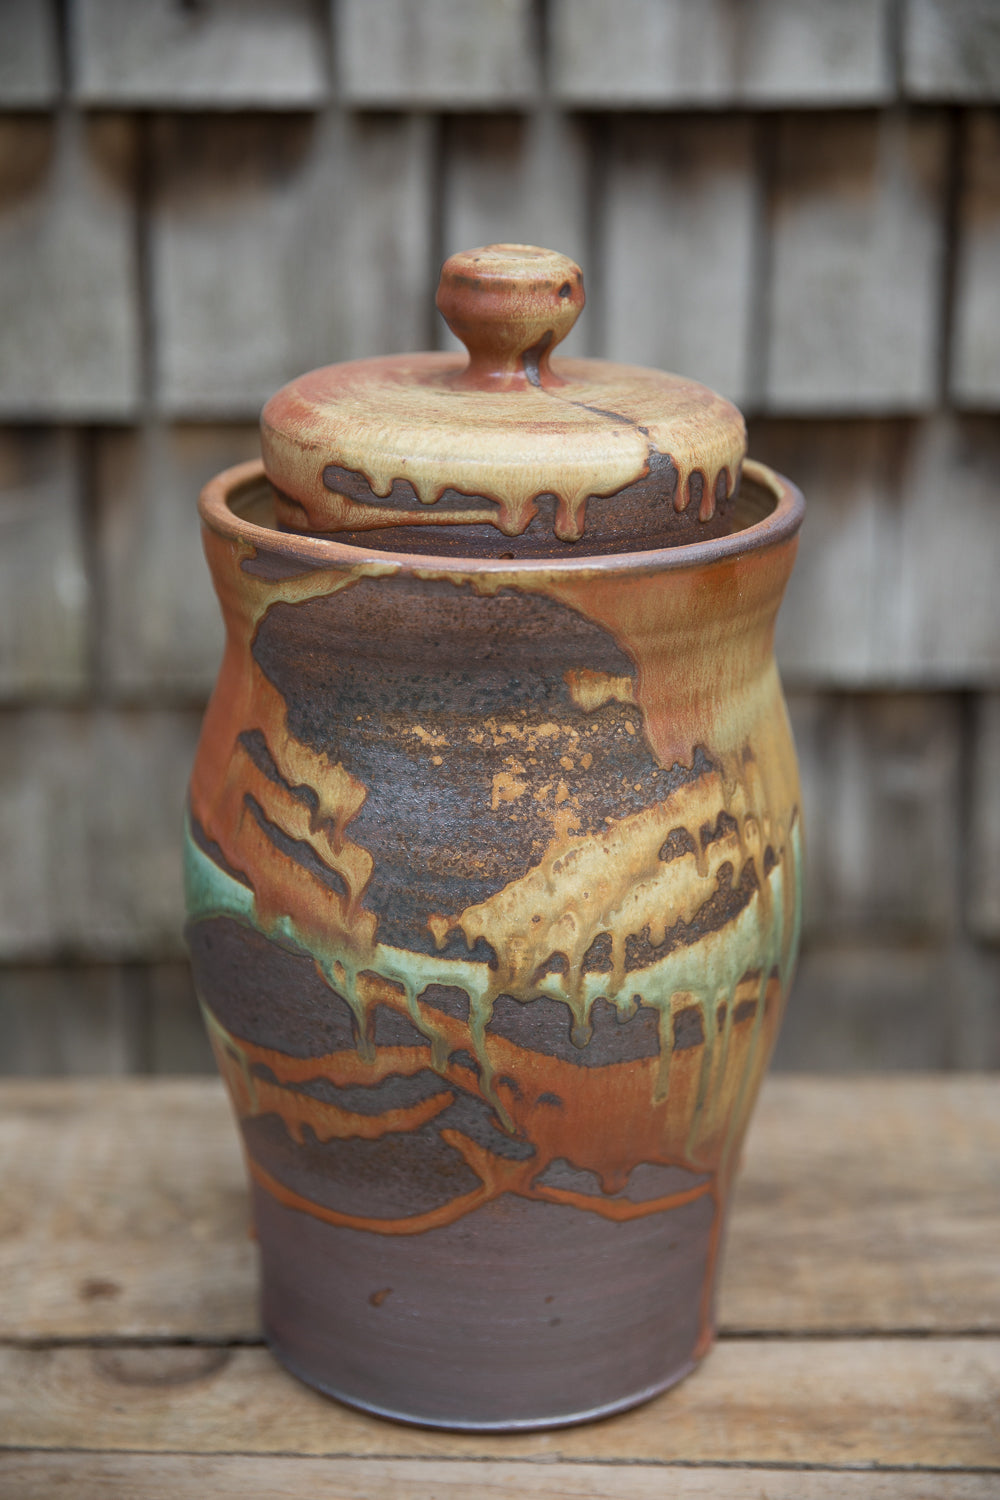 Fermentation Crock in Rust and Turquoise